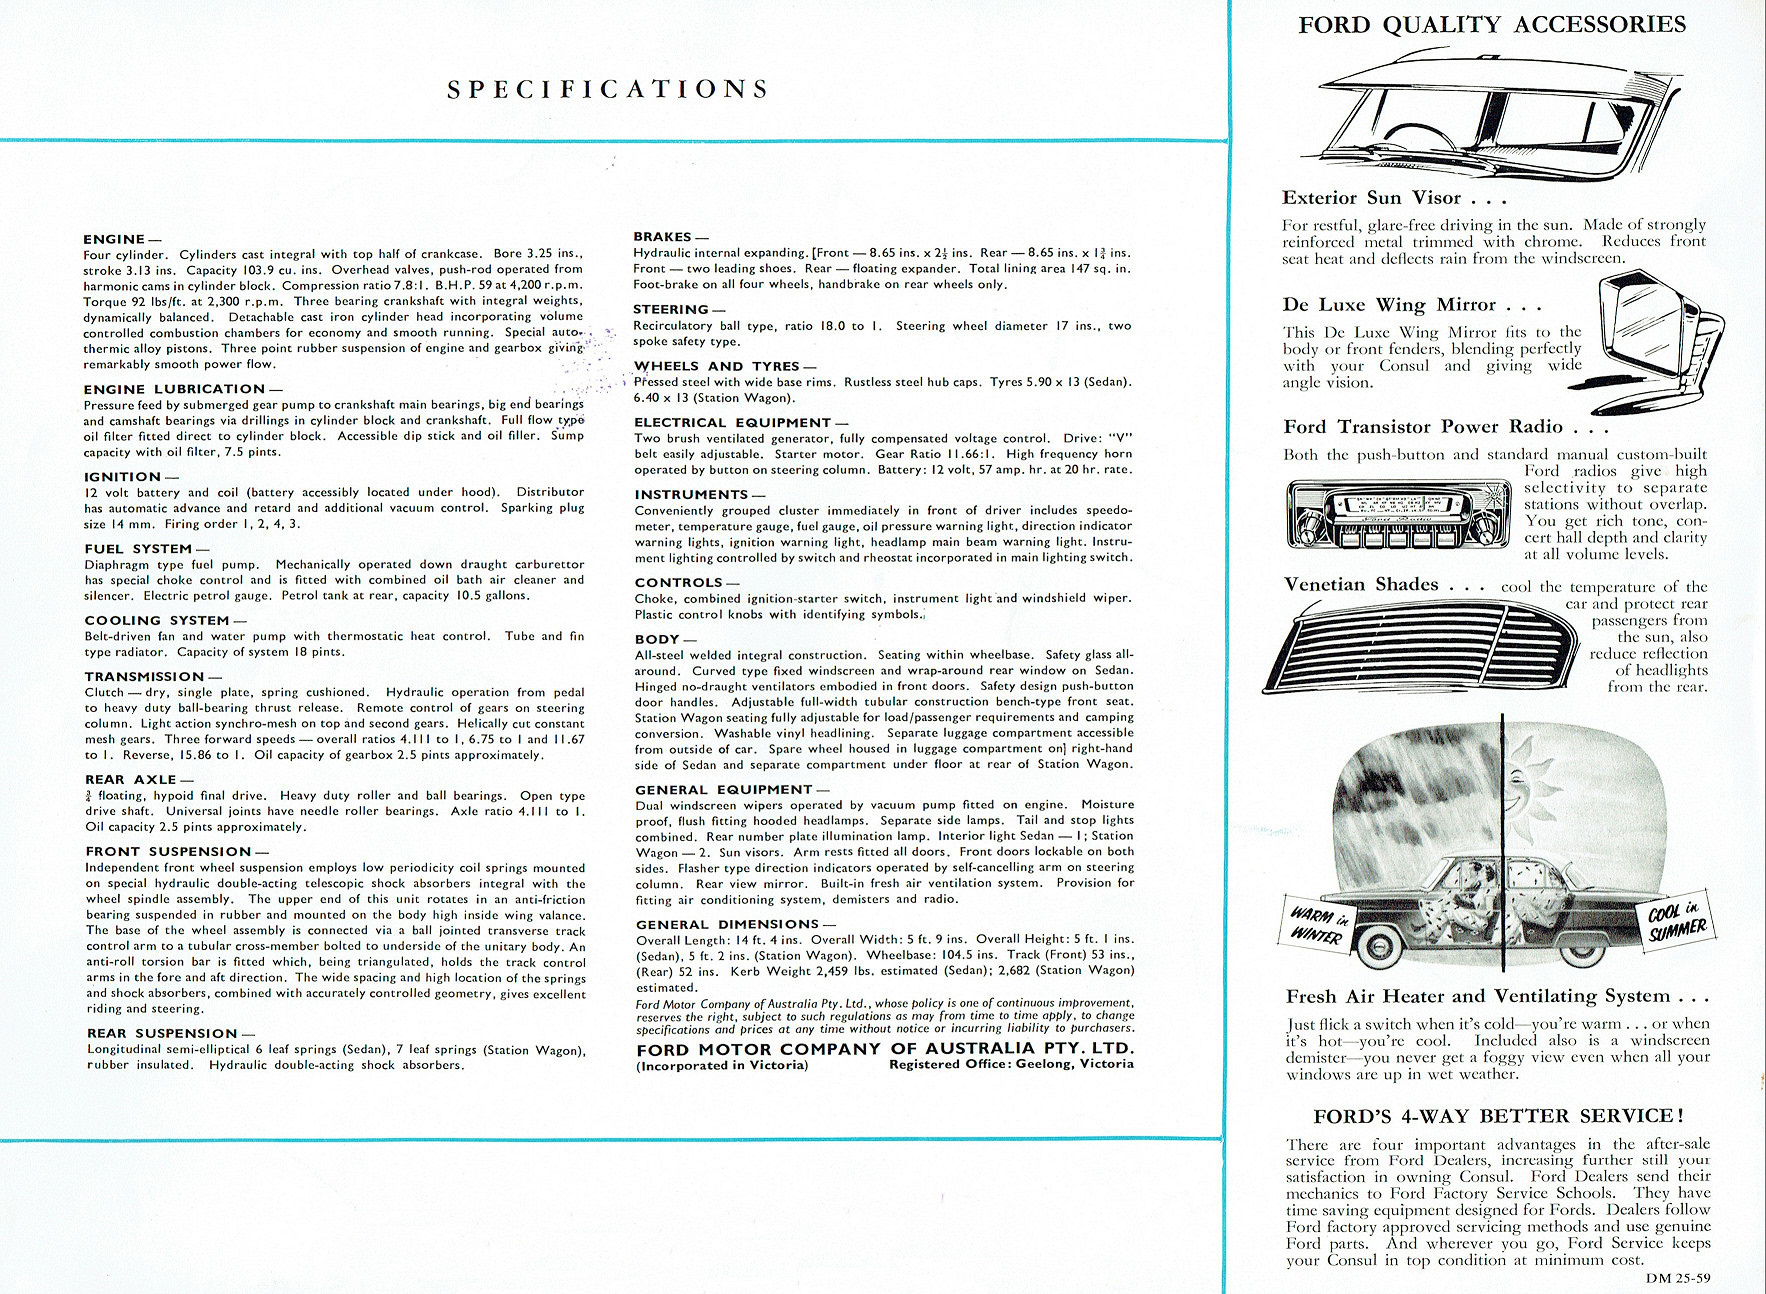 1960 Ford Consul Mkii Brochure 4 Way Switch Internal Full Size Image